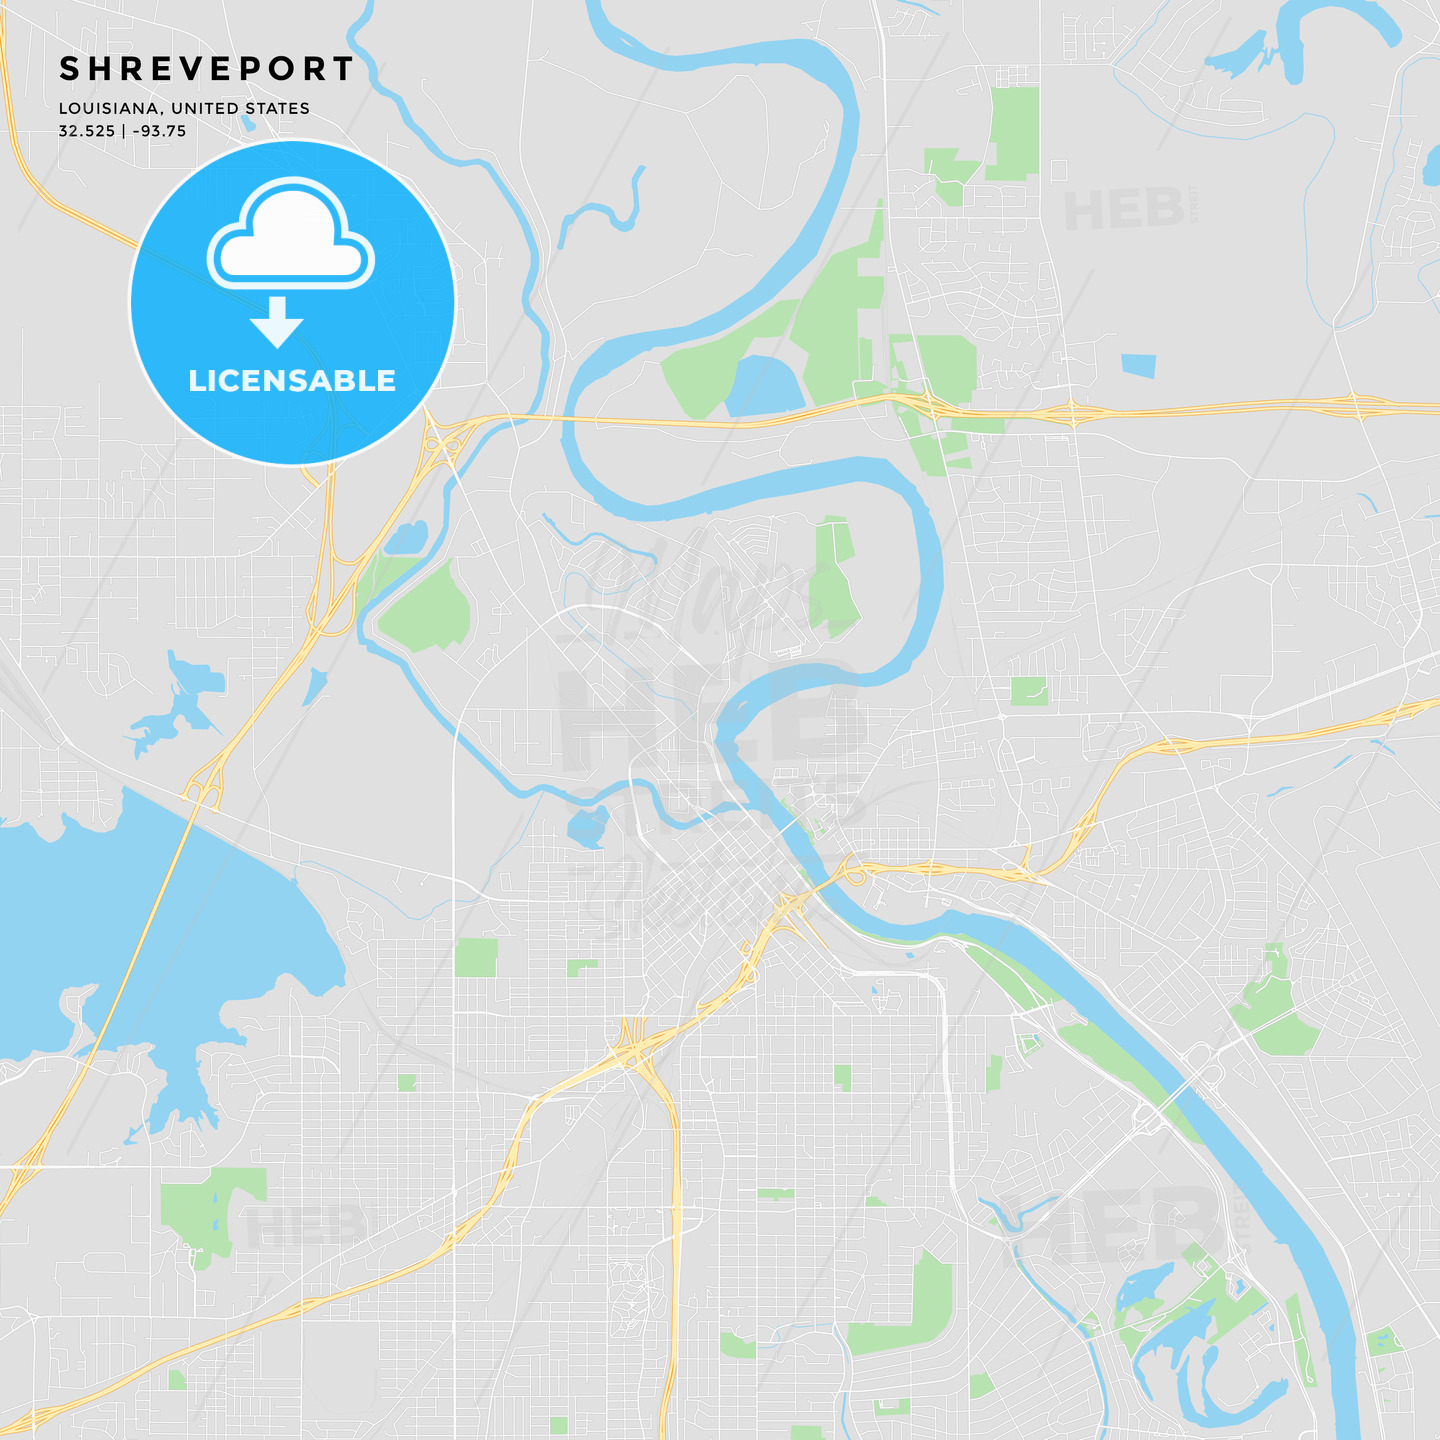 image relating to Printable Map of Louisiana named Printable road map of Shreveport, Louisiana